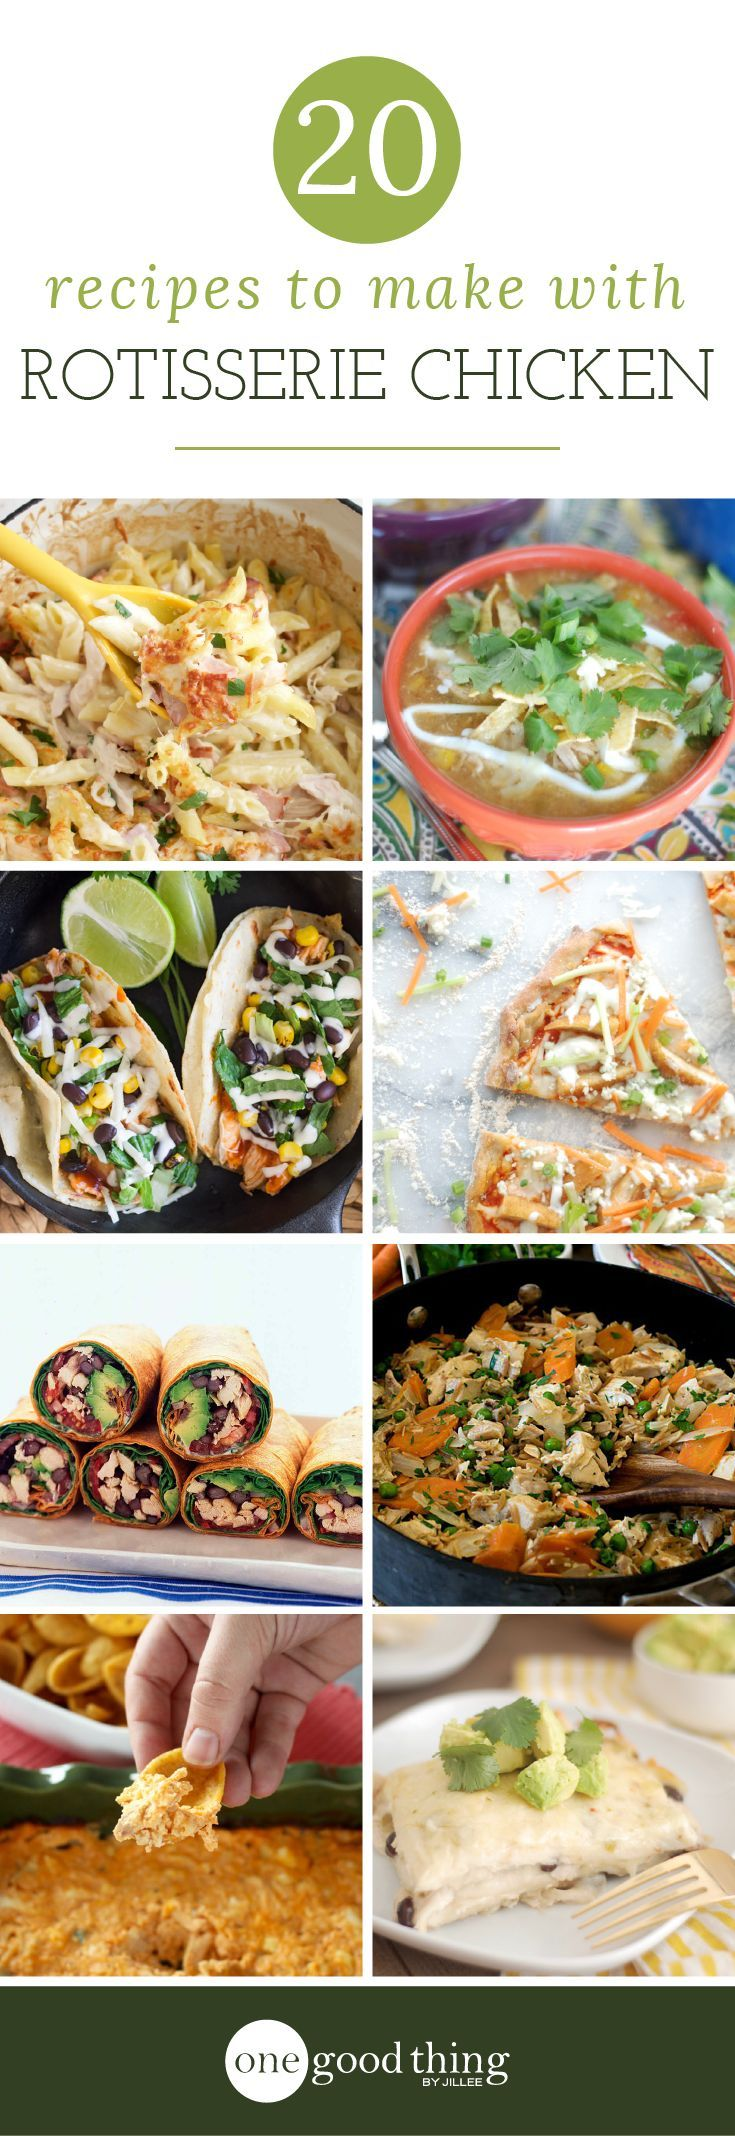 20 Quick Recipes You Can Make With Rotisserie Chicken - One Good Thing by Jillee